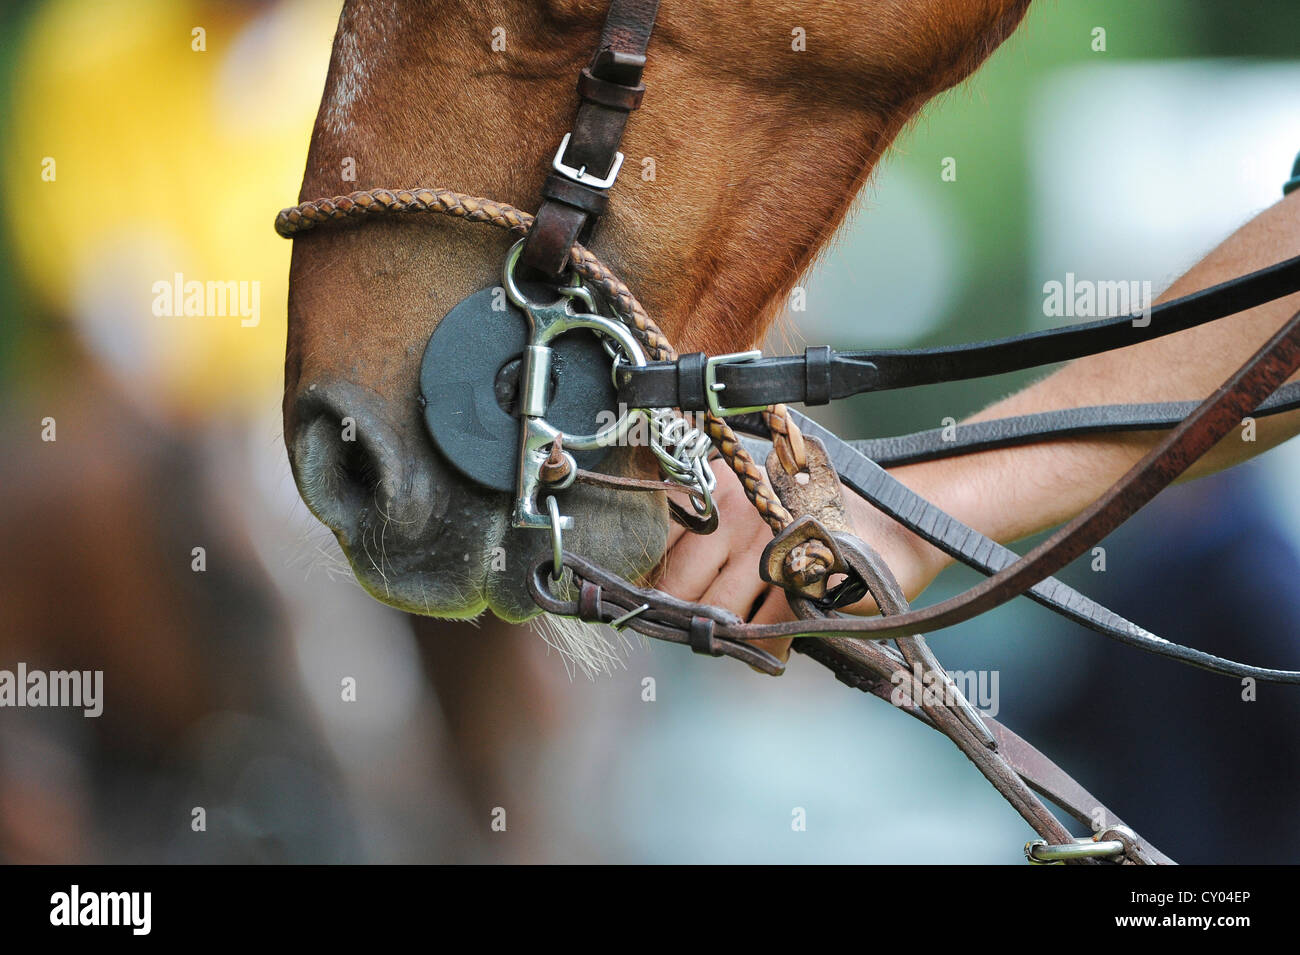 One hand holding the bridle of a polo pony - Stock Image